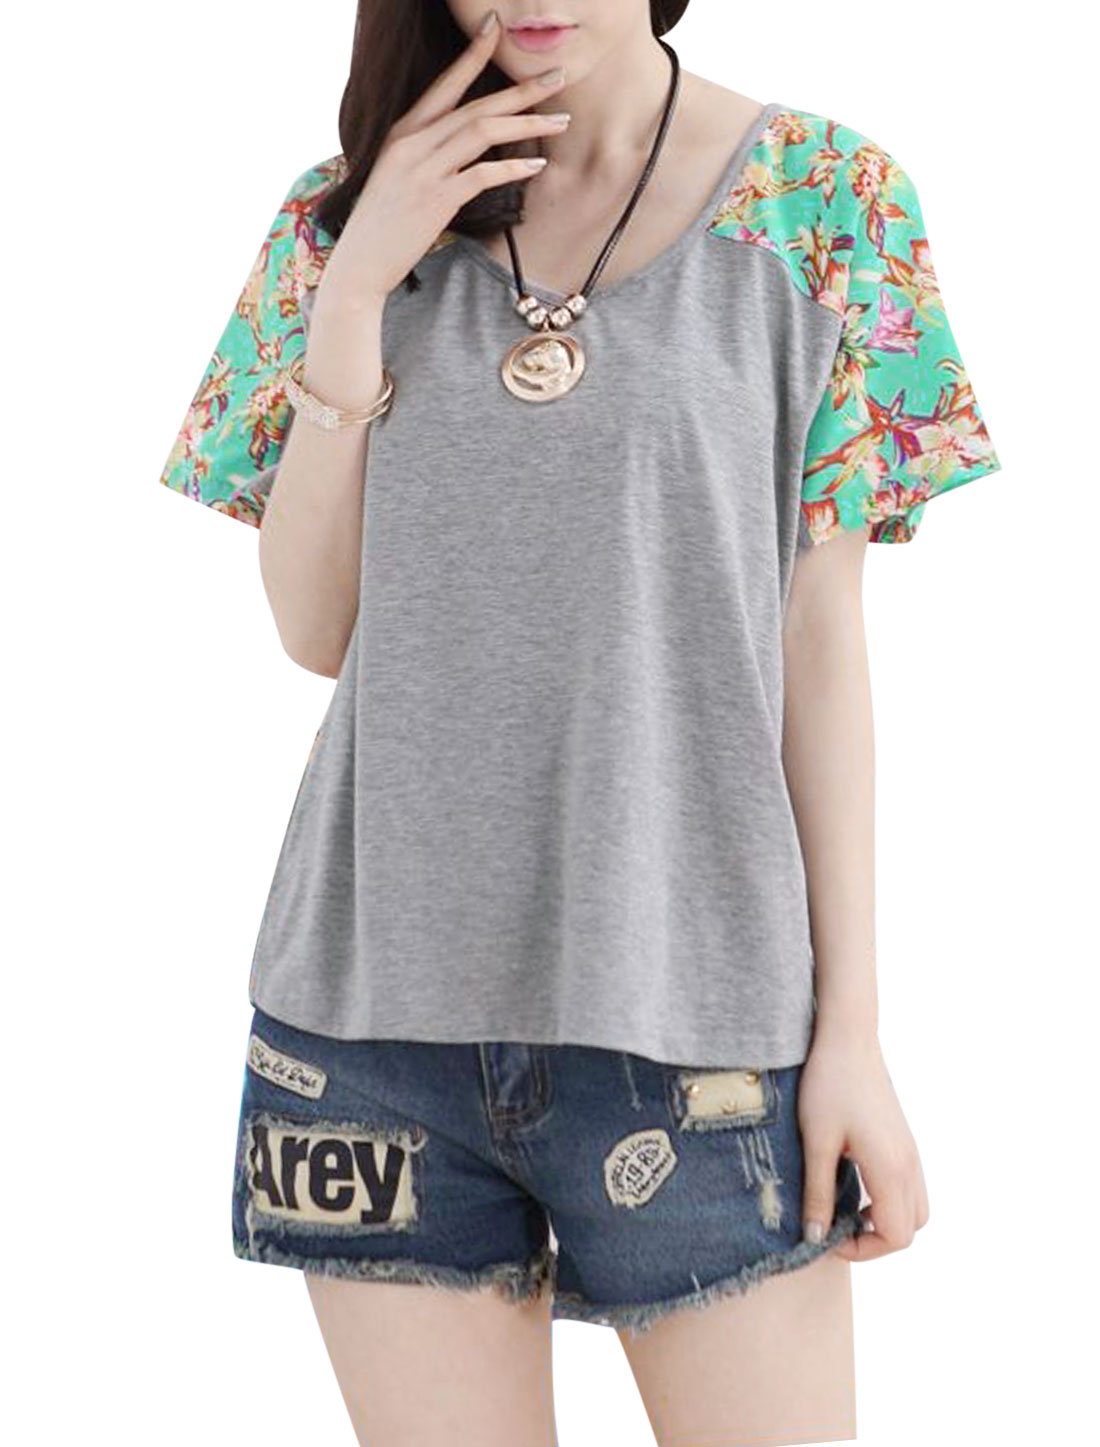 Lady Summer Fit Chiffon Panel Batwing Sleeve Casual T-shirt Aqua Gray XS